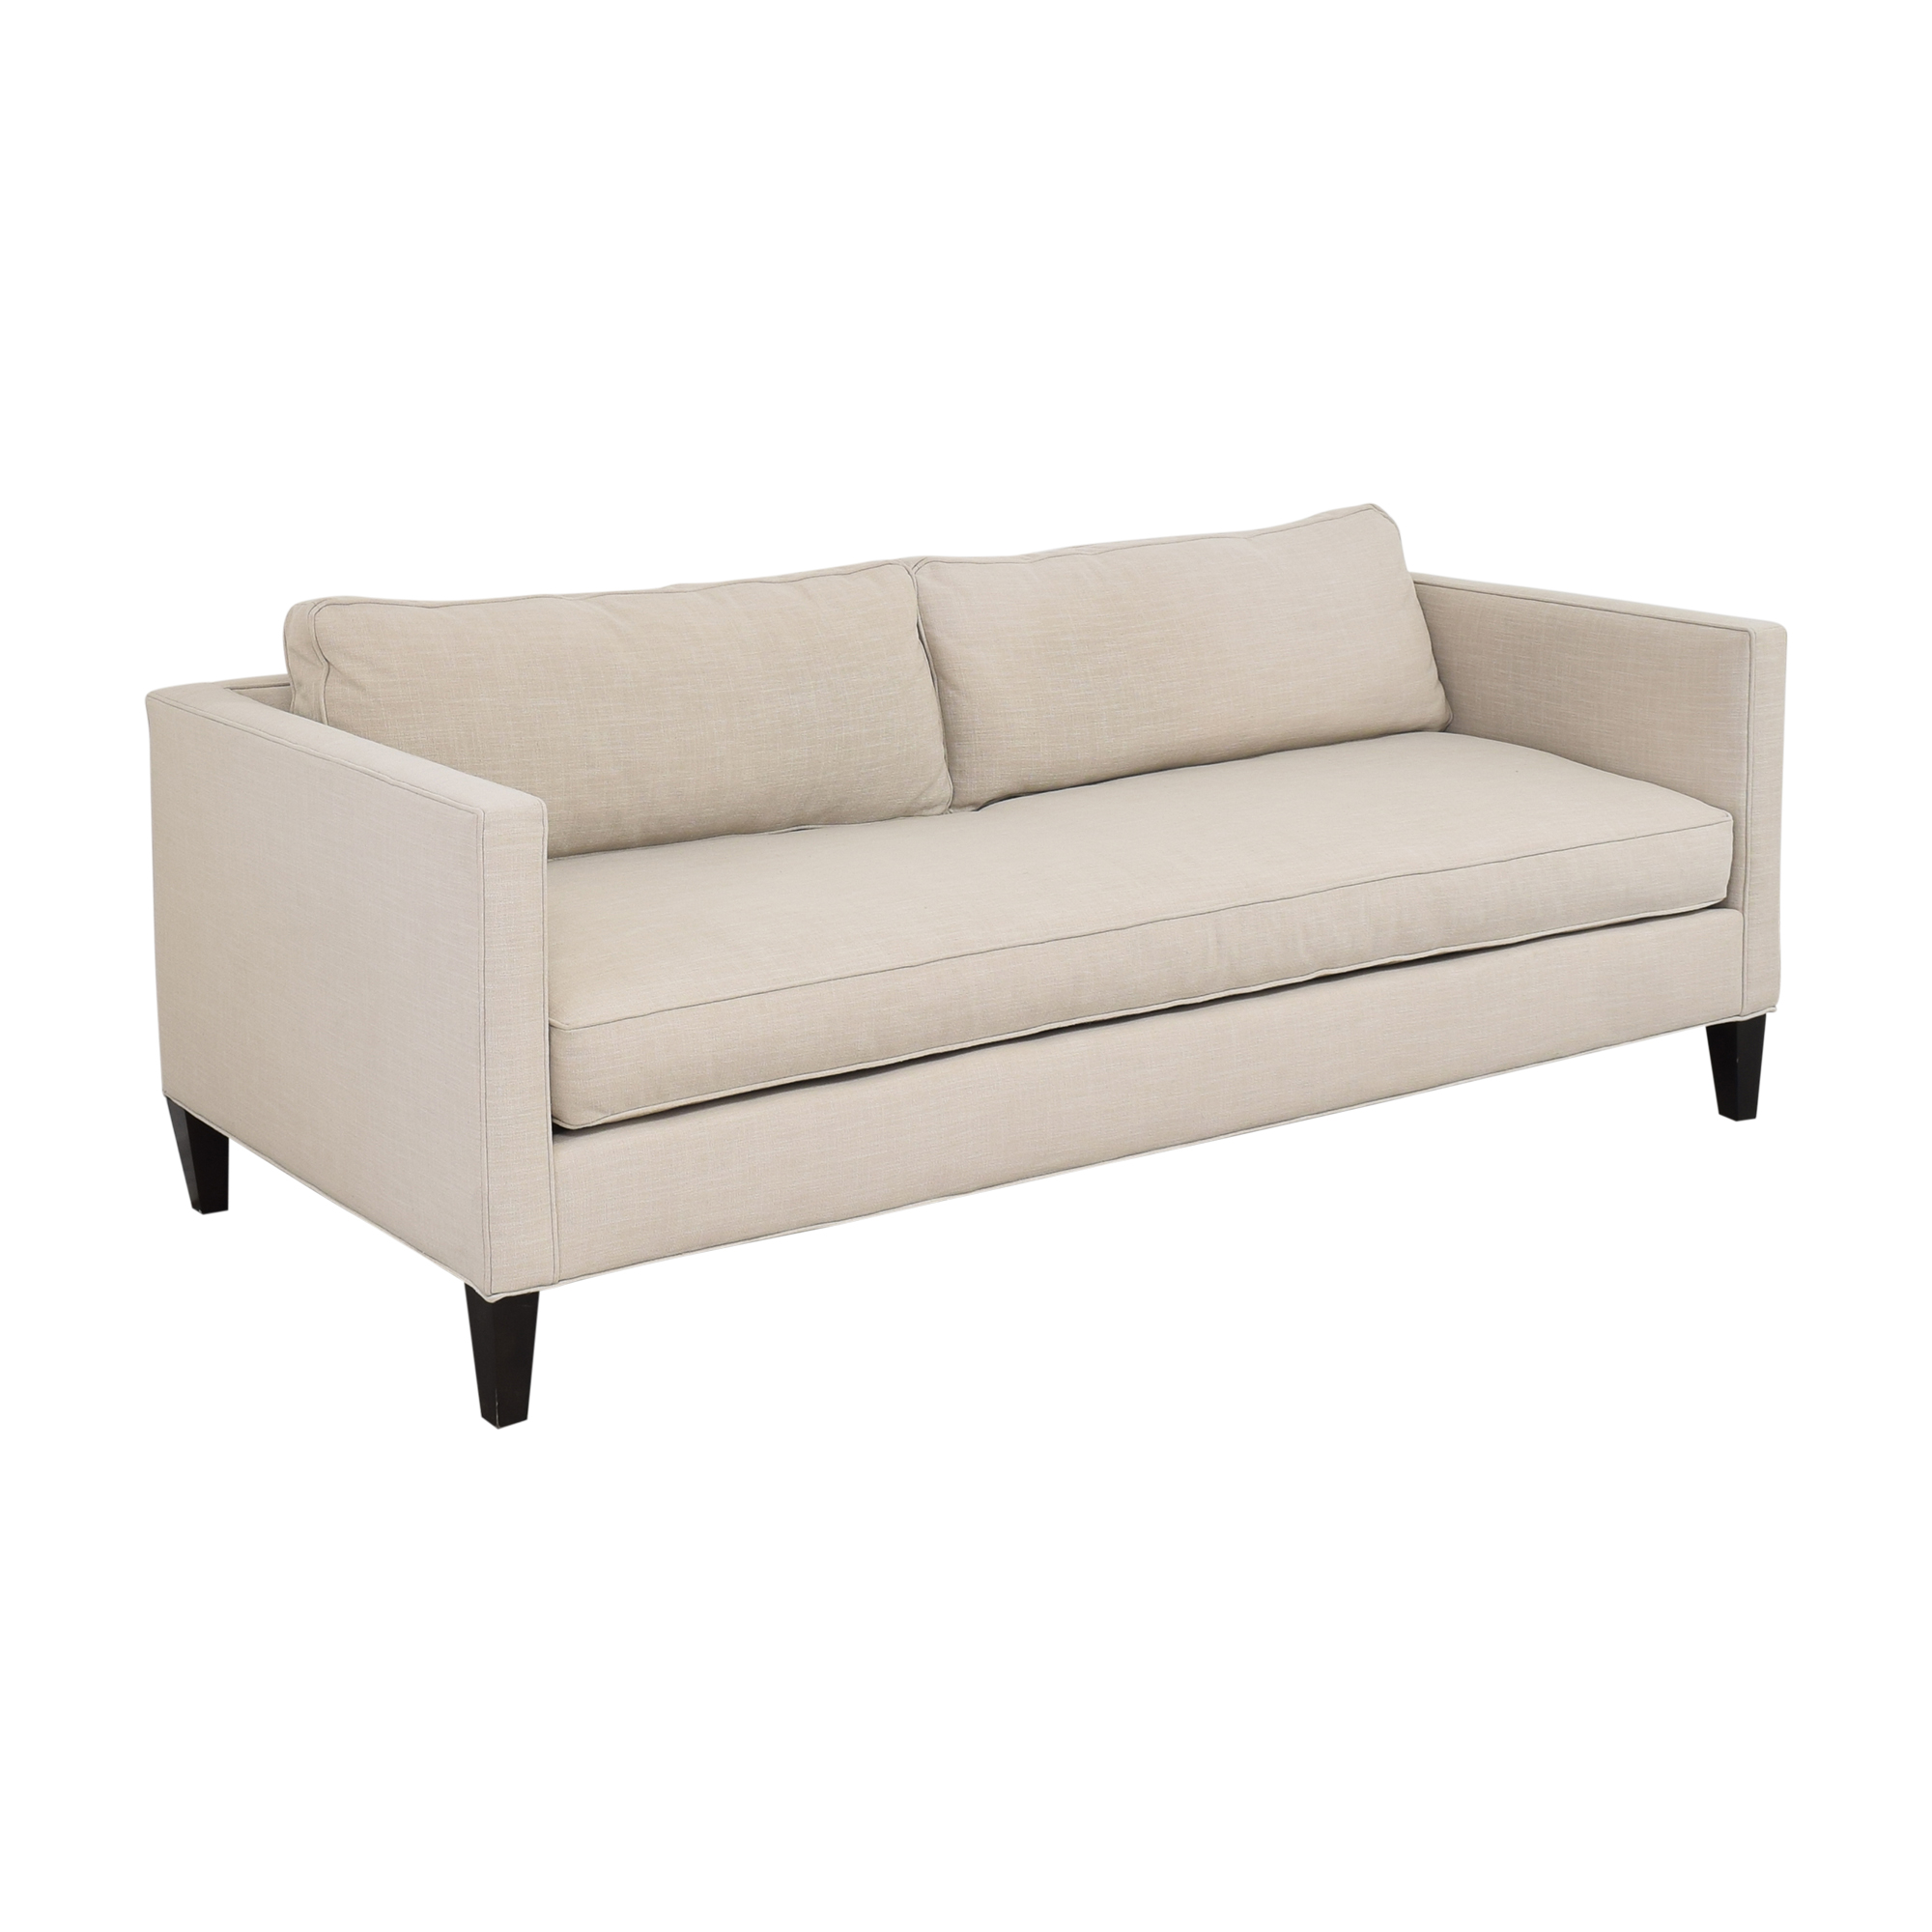 West Elm West Elm Dunham Sofa for sale